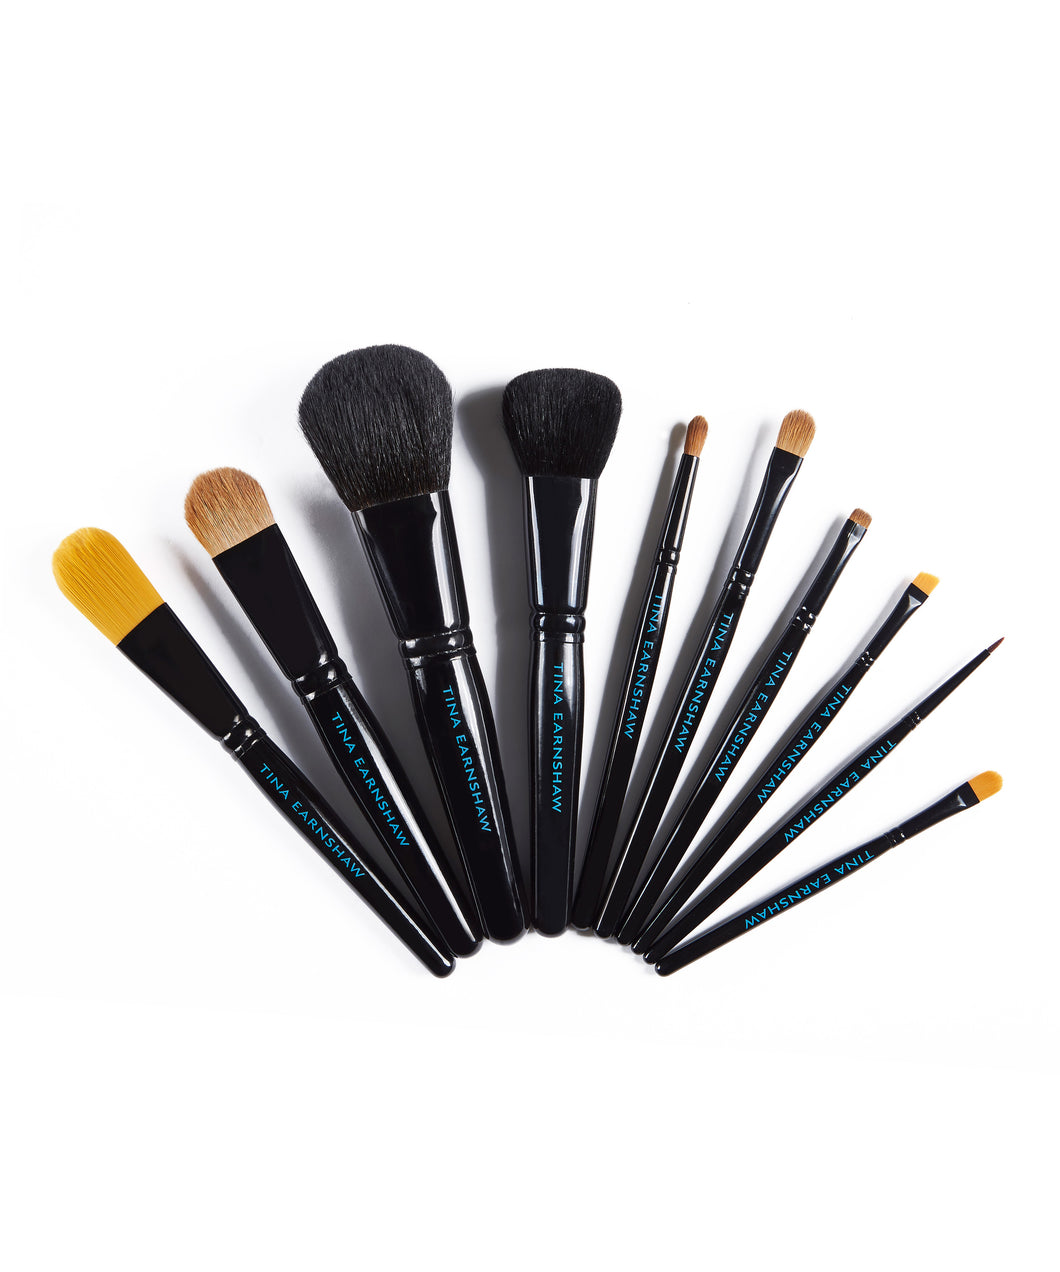 Deluxe brush set - 10 Brushes